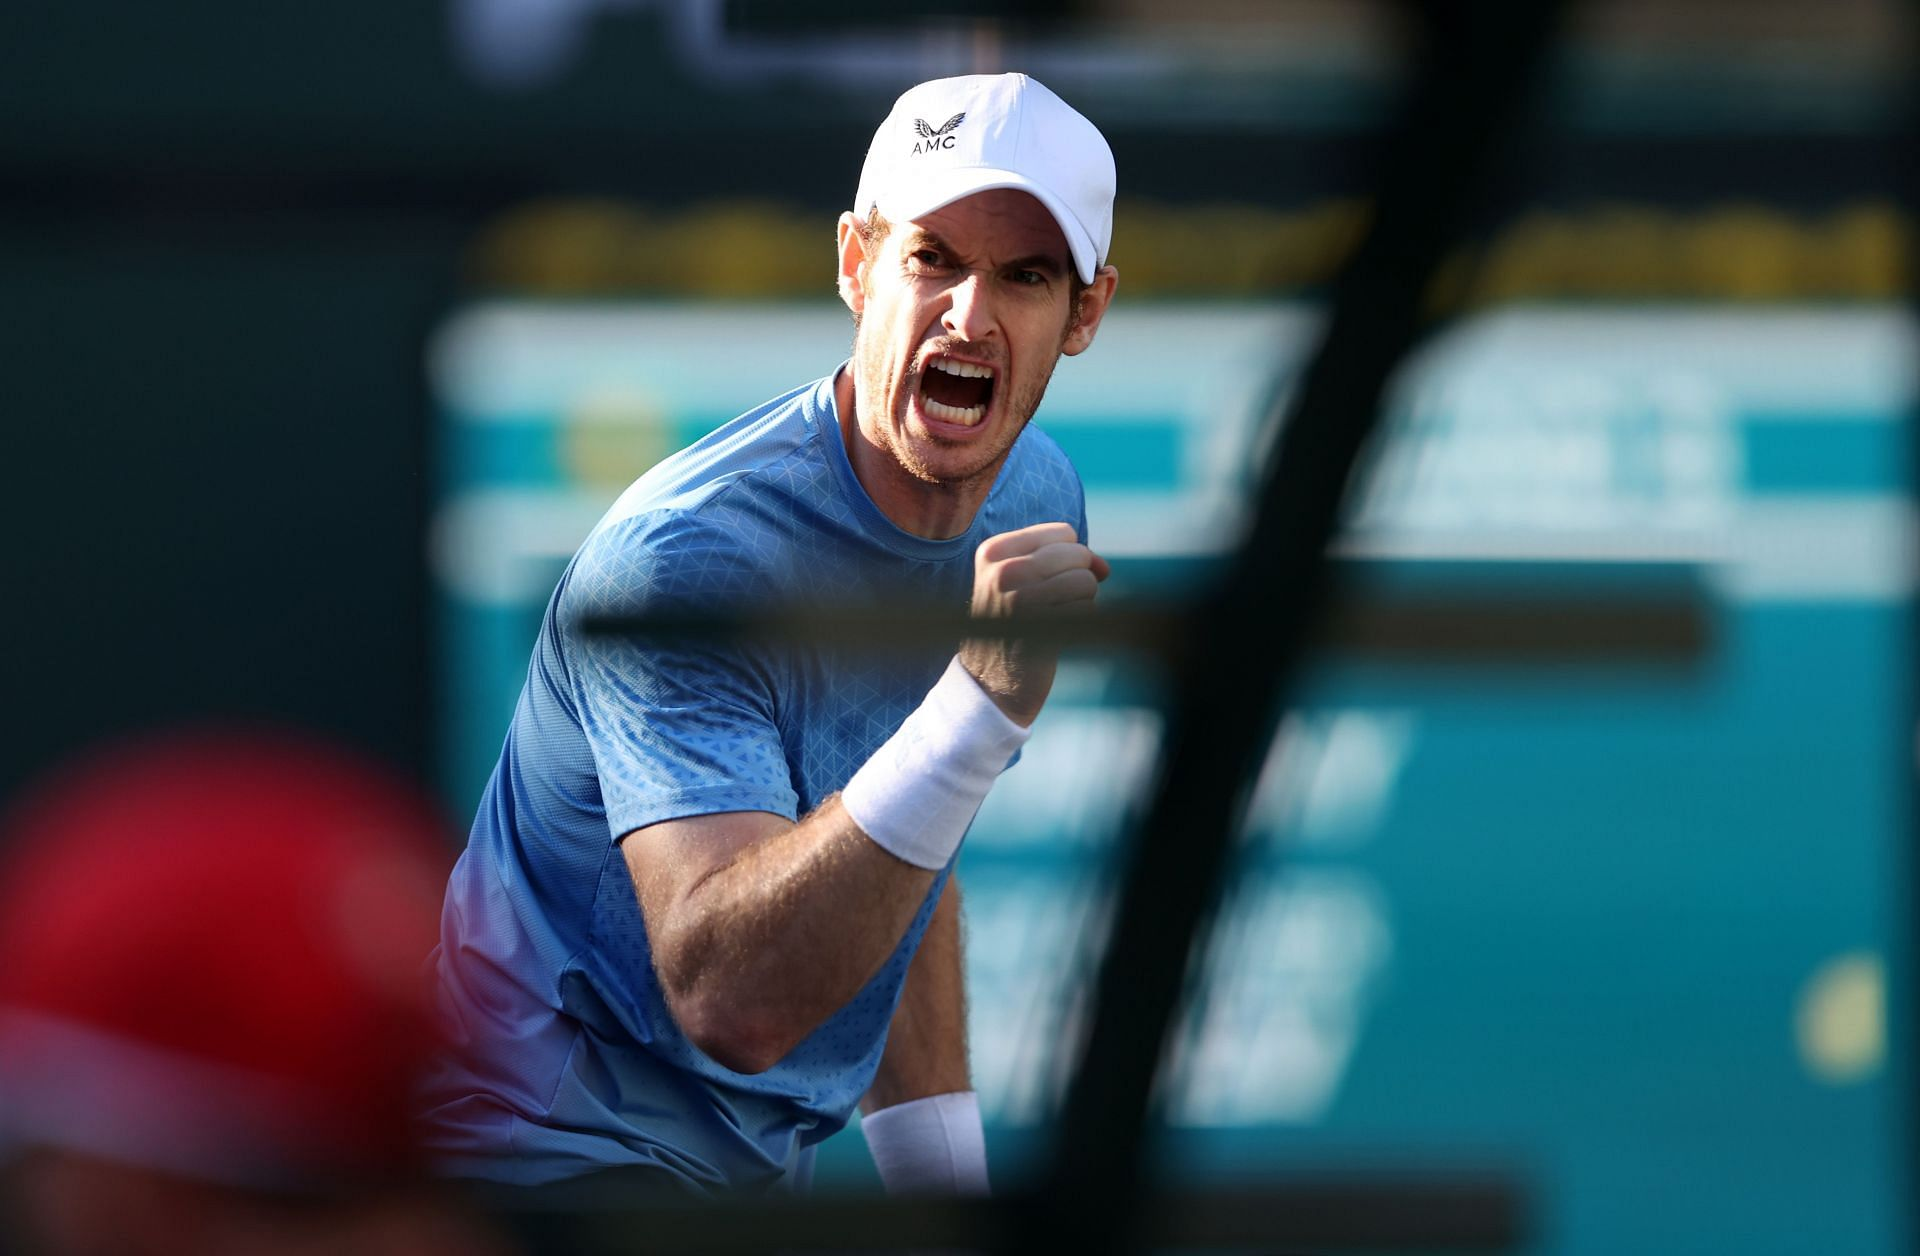 <a href='https://www.sportskeeda.com/player/andy-murray' target='_blank' rel='noopener noreferrer'>Andy Murray</a> at the BNP Paribas Open - Day 9